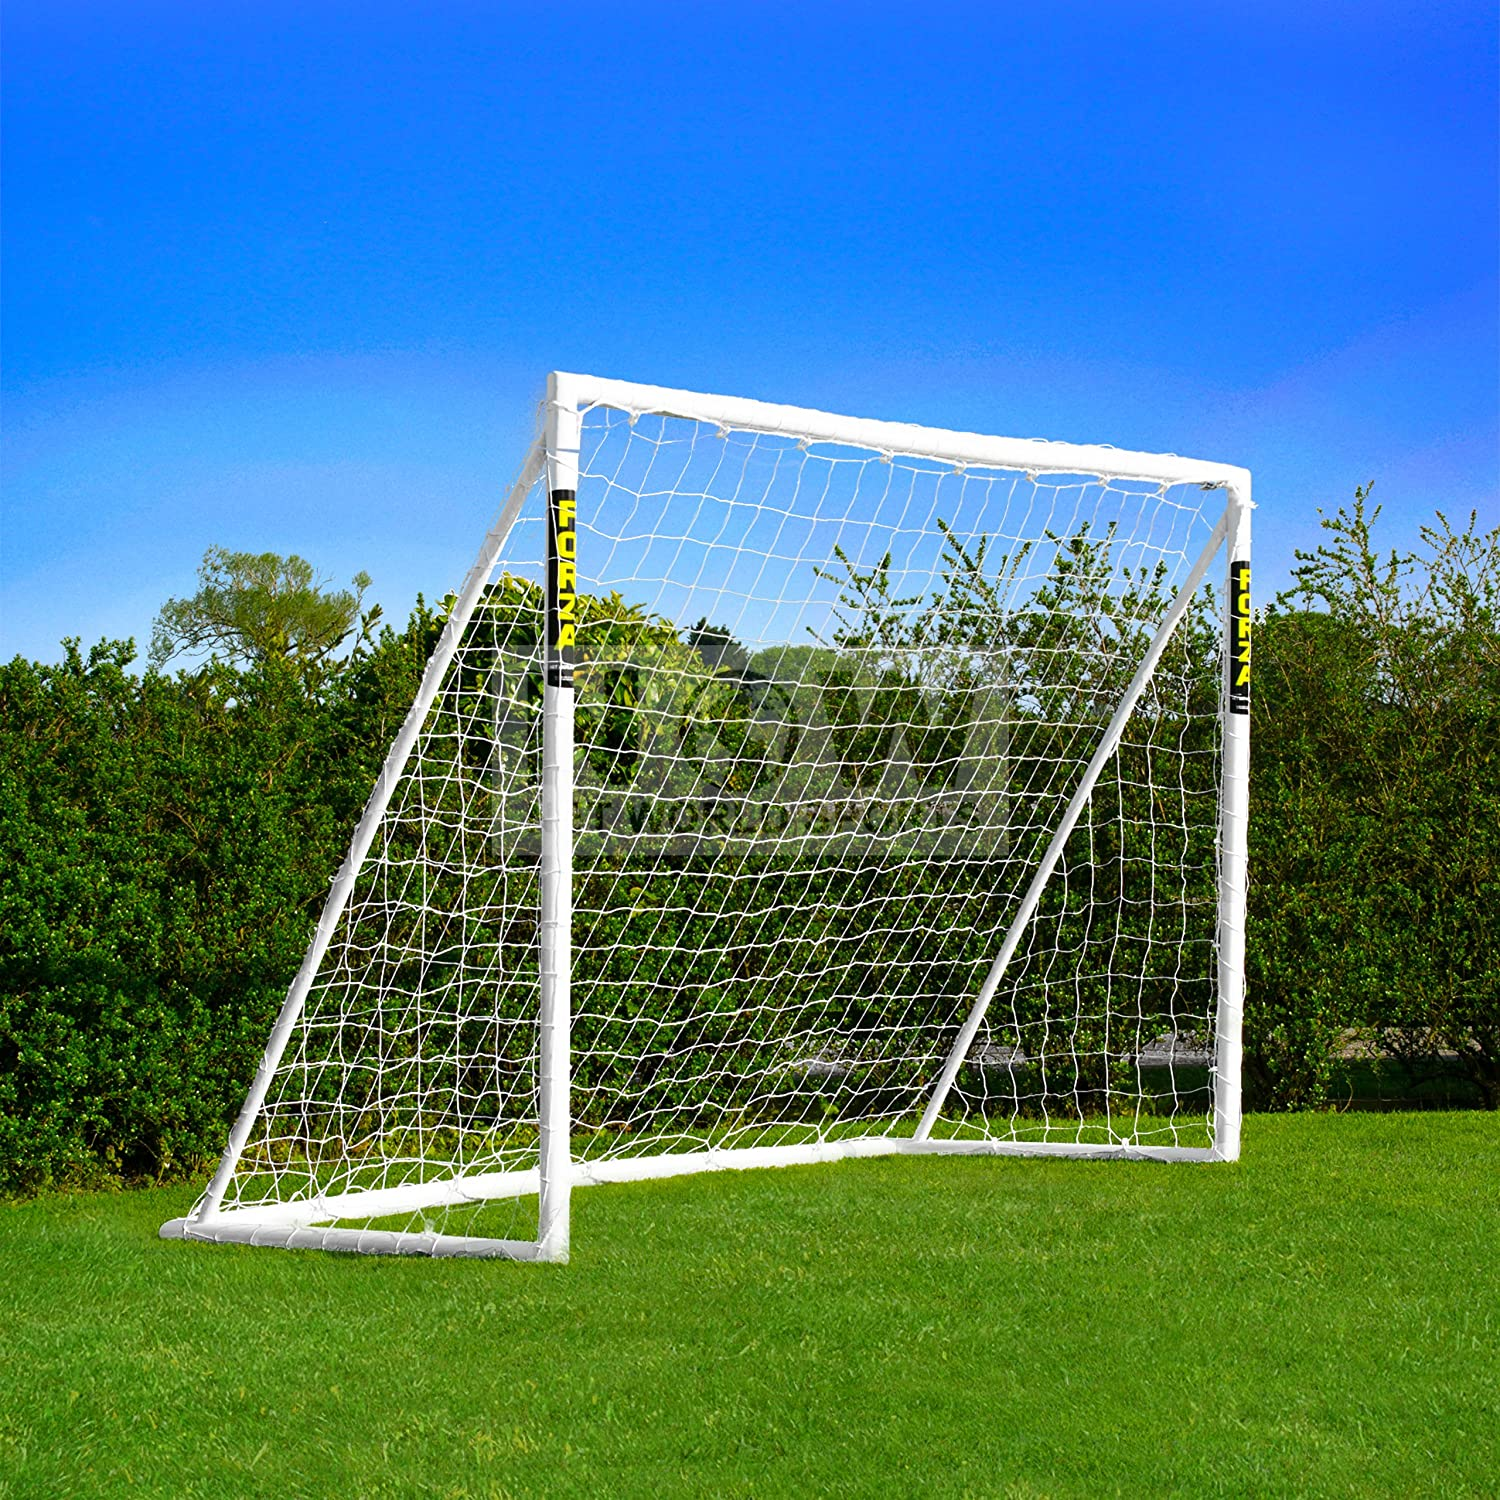 amazon com forza soccer goal 8x6 kit your kids out with the